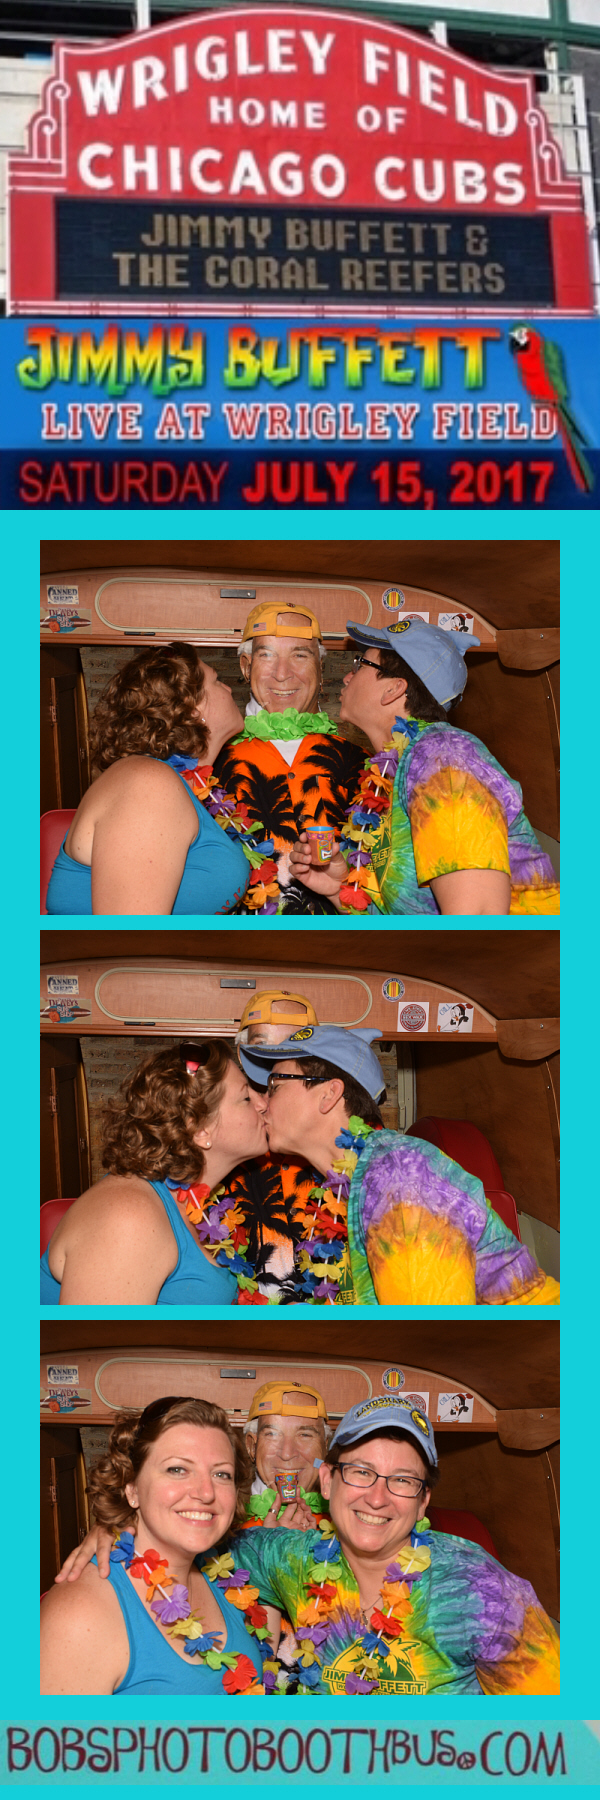 Jimmy Buffett final photo strip graphic_44.jpg